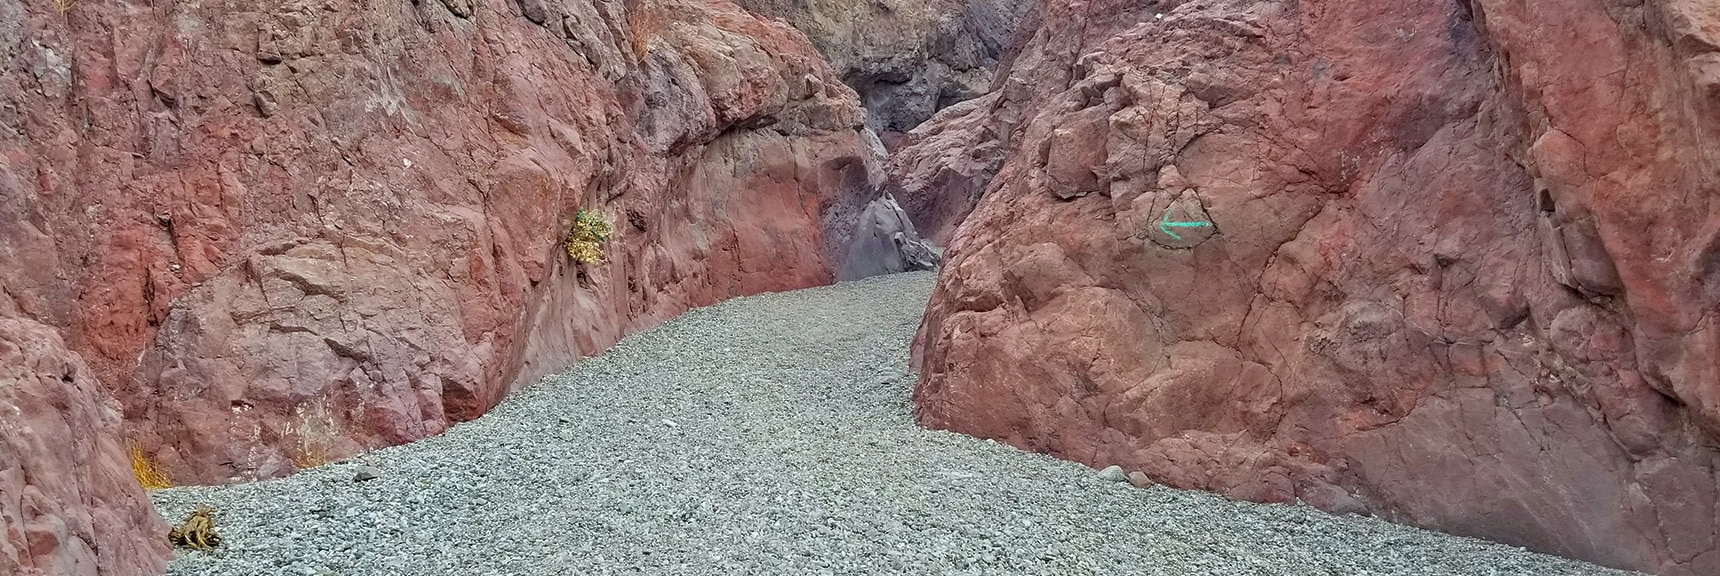 Ascending the Hot Springs Canyon, Good Trail Markings, Fine Gravel Surface. | Arizona Hot Spring | Liberty Bell Arch | Lake Mead National Recreation Area, Arizona